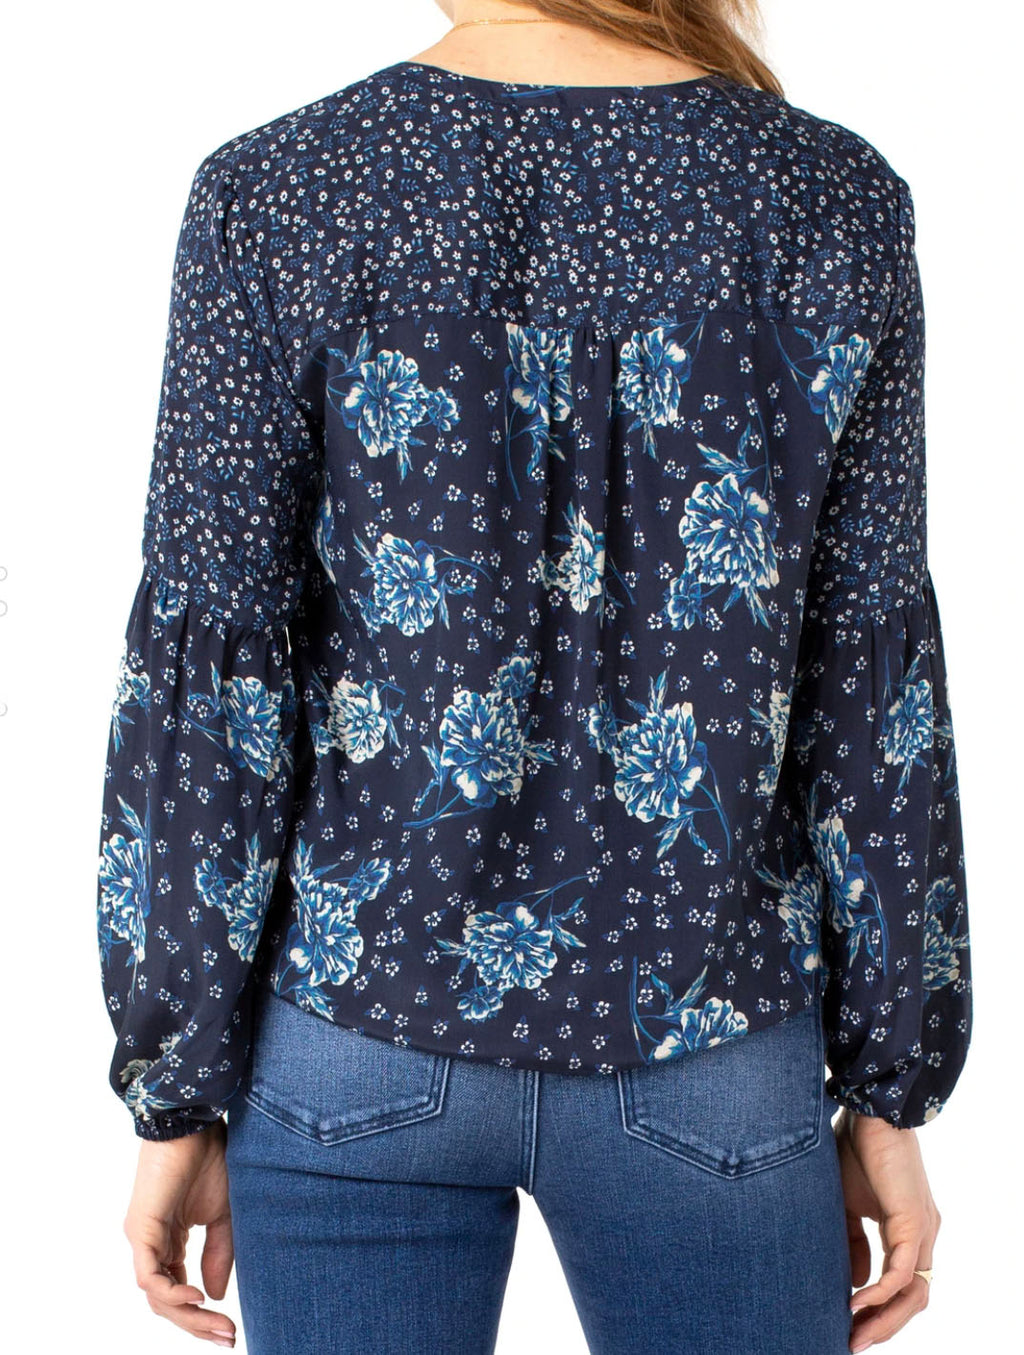 Liver Pool Tie Blouse in Floral